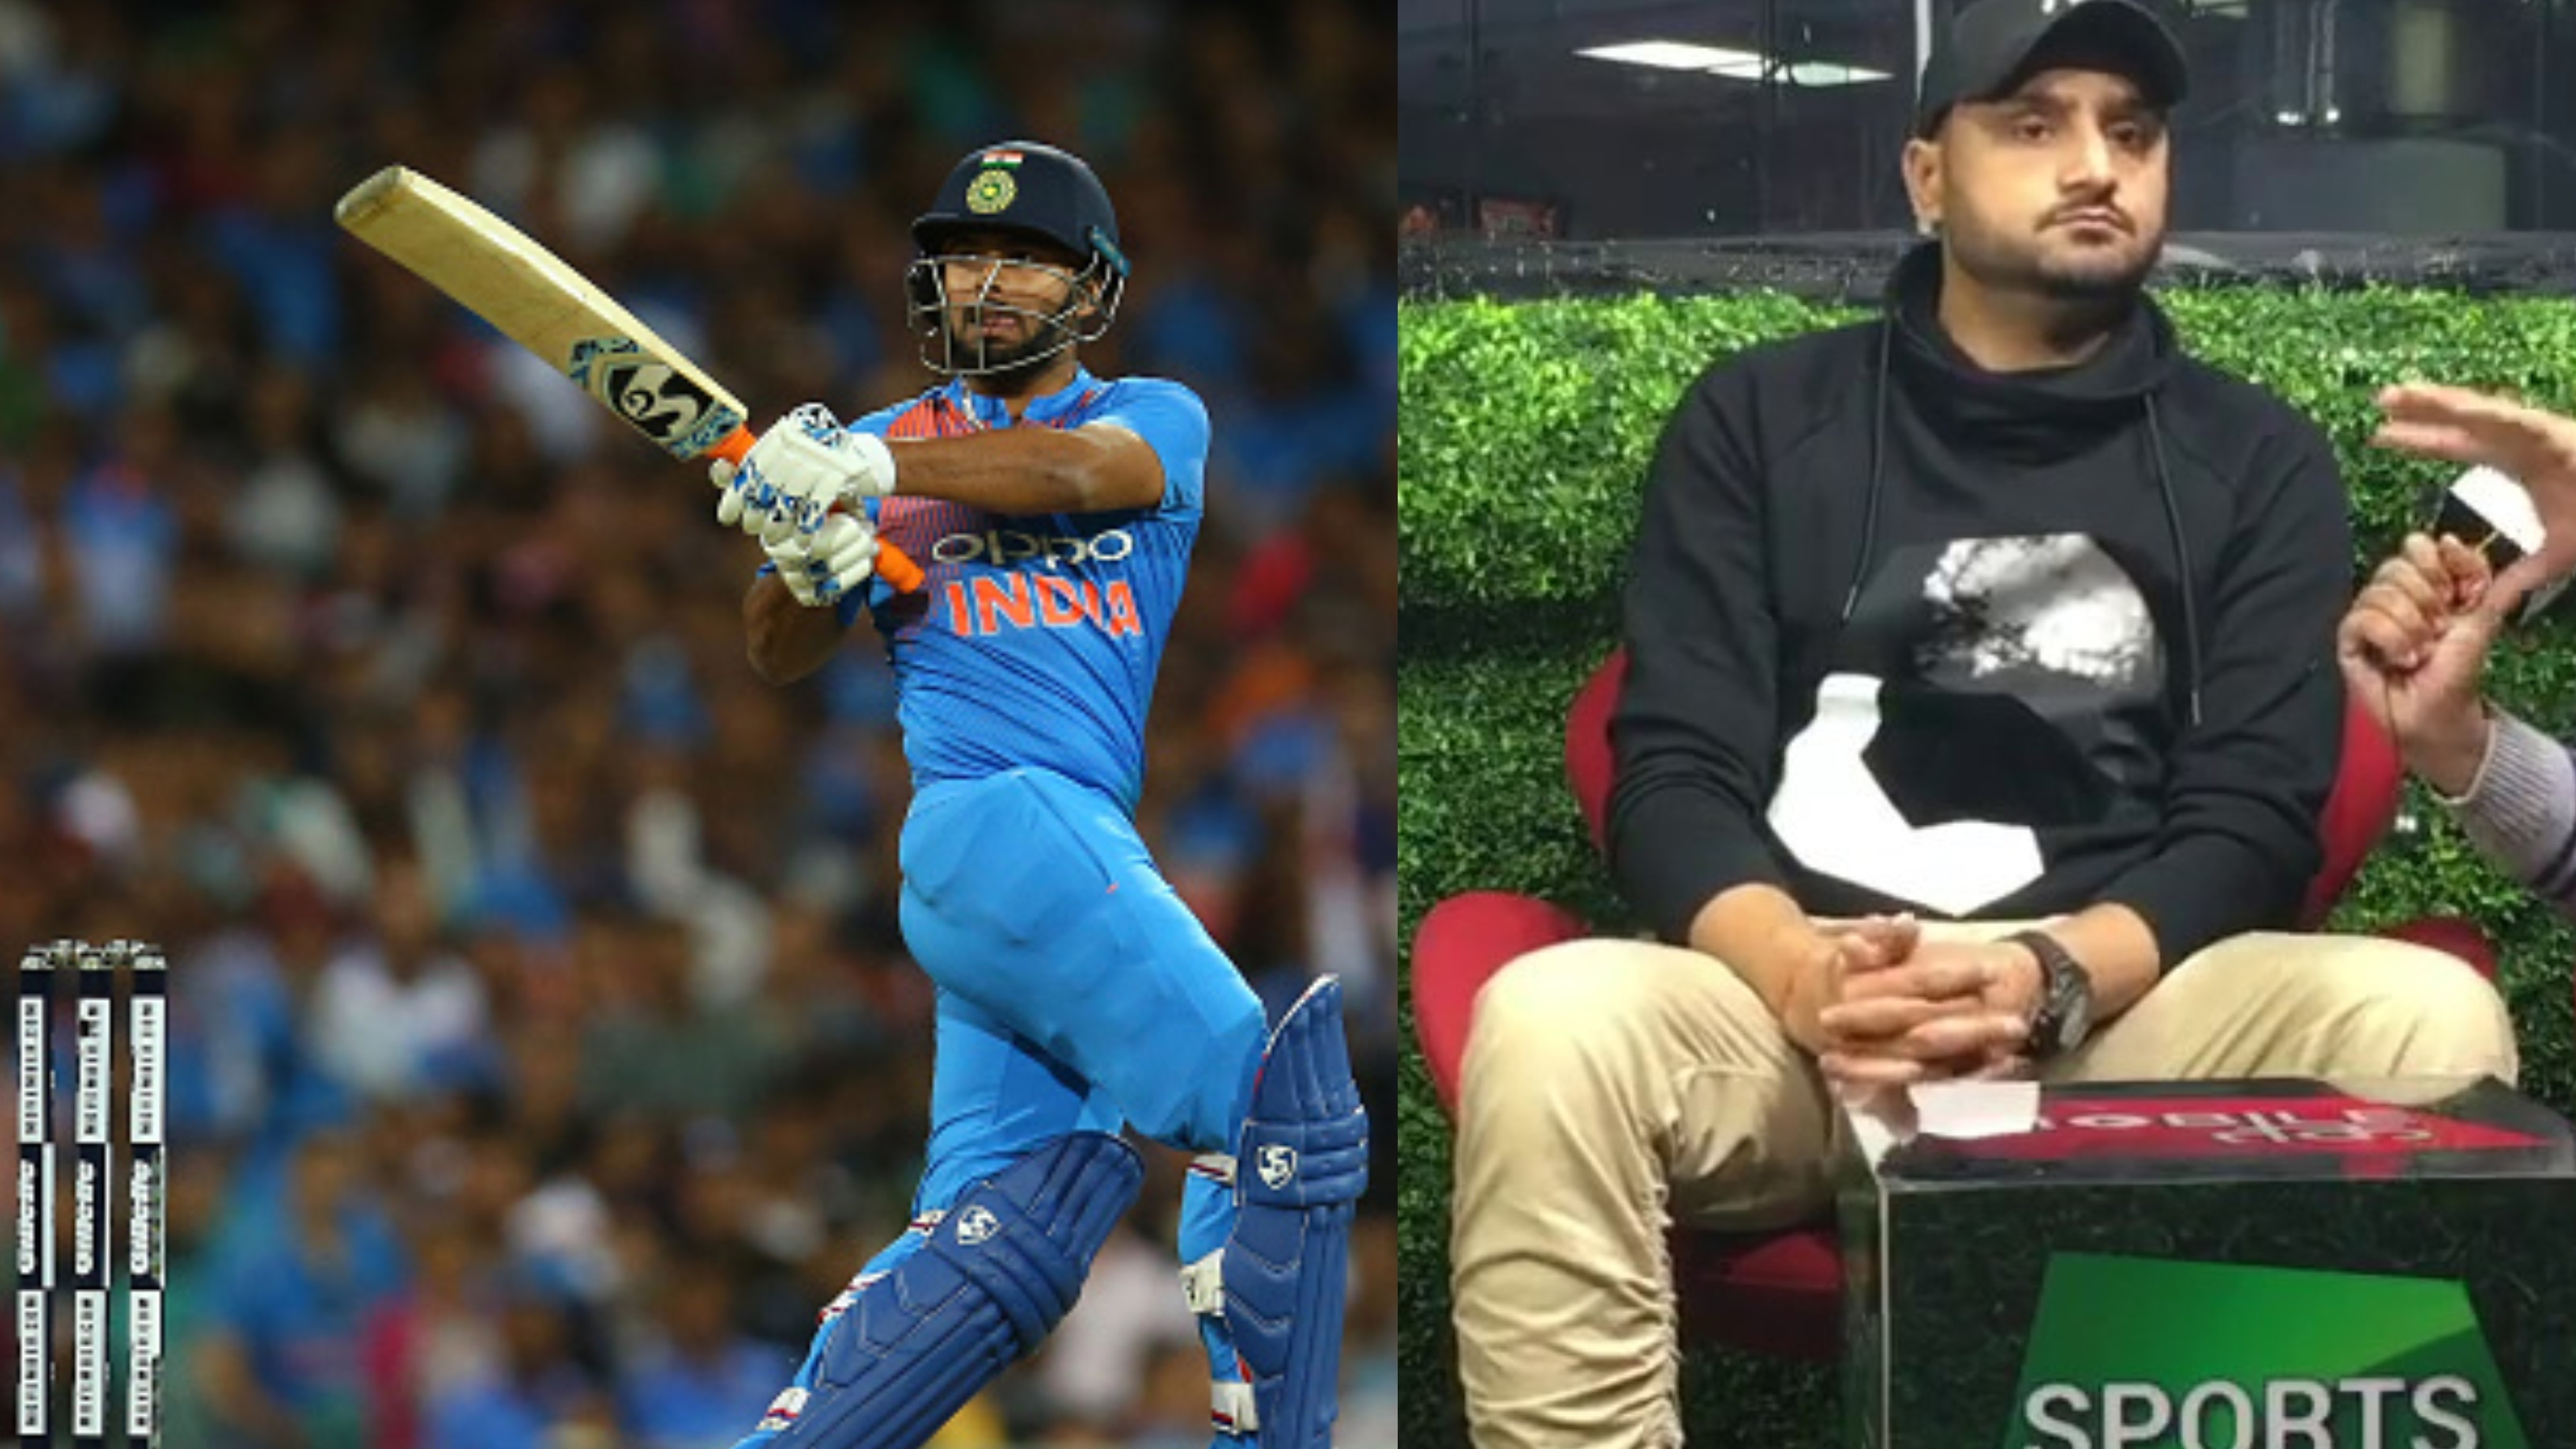 NZ v IND 2019: Rishabh Pant can't afford to waste chances, says Harbhajan Singh